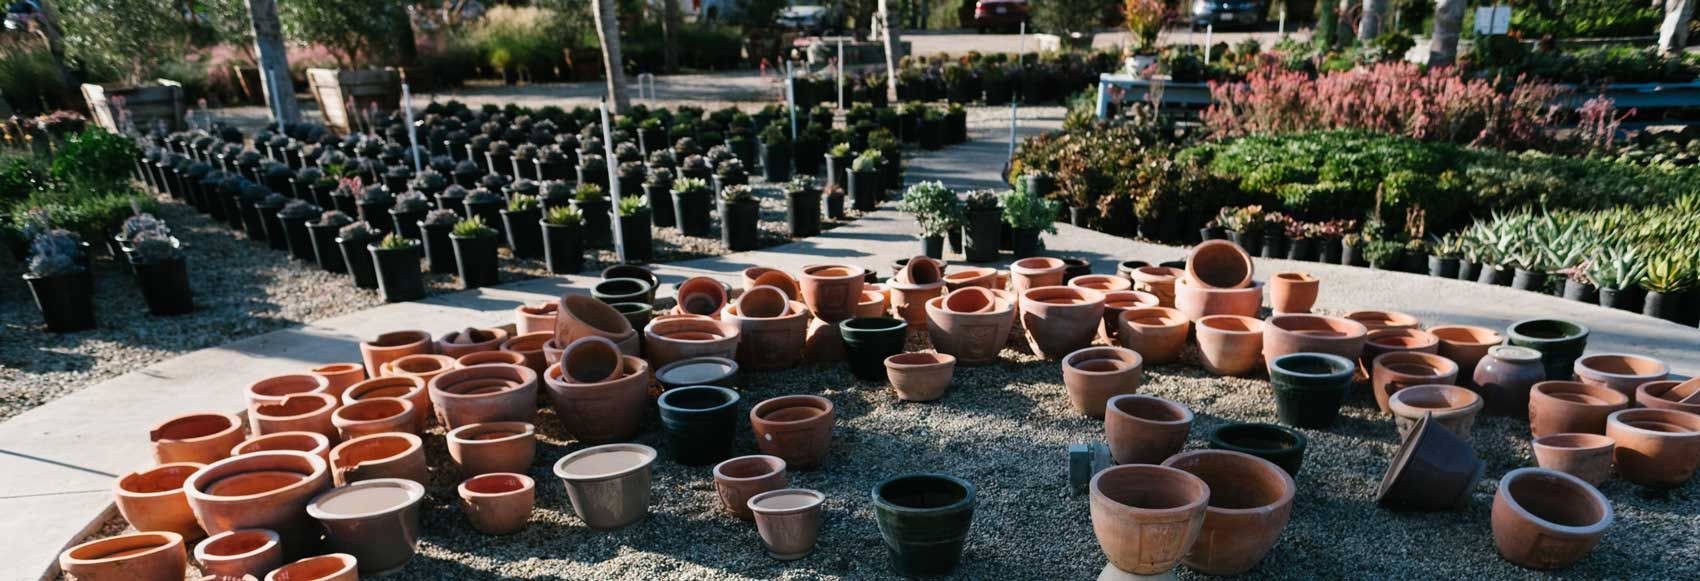 pottery in moorpark at sterling gardens